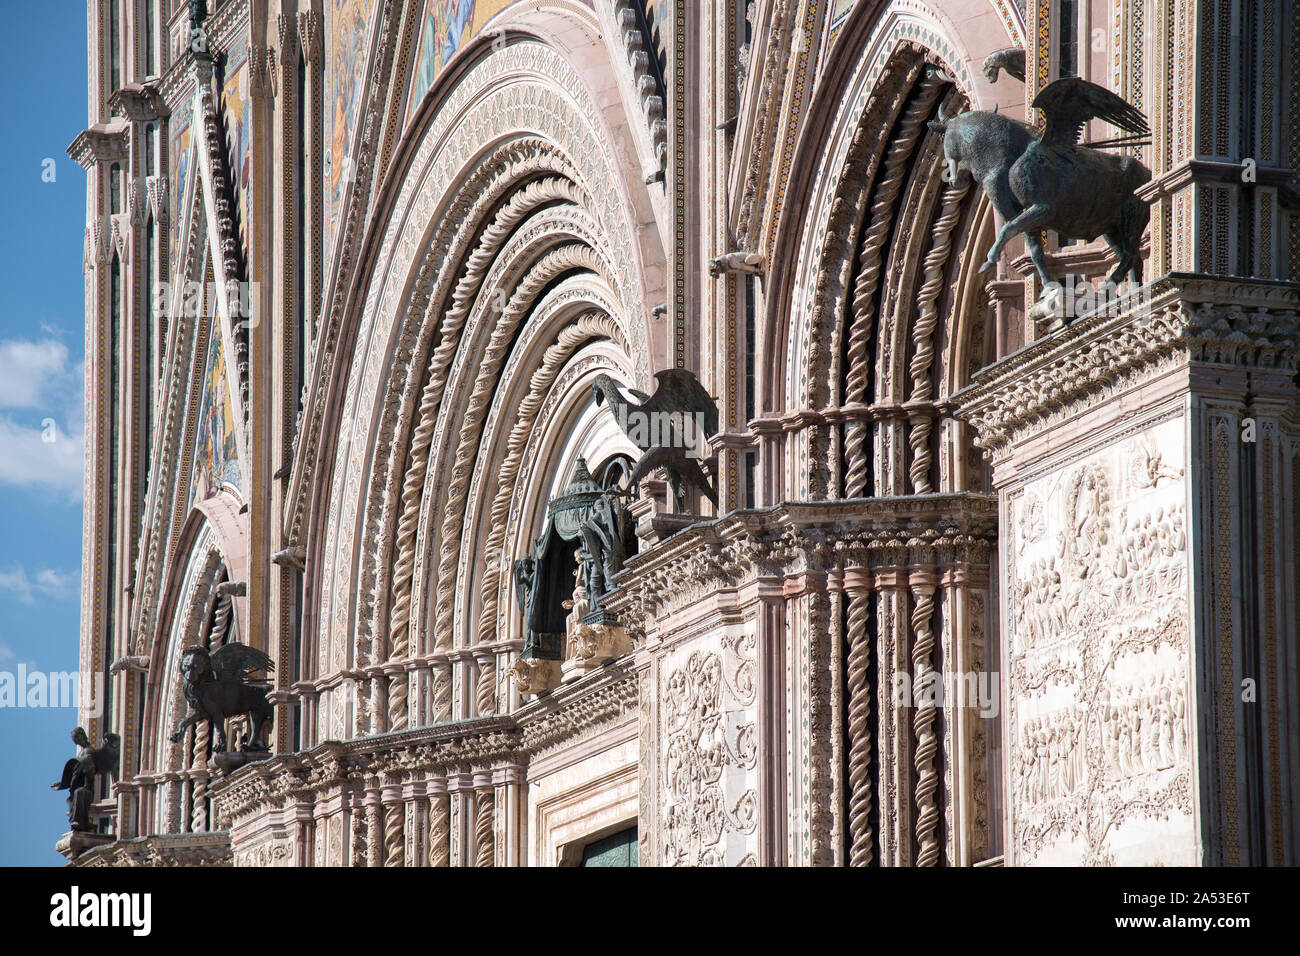 Italian Gothic Cattedrale di Santa Maria Assunta (Cathedral of Assumption of the Blessed Virgin Mary) in historic centre of Orvieto, Umbria, Italy. Au Stock Photo